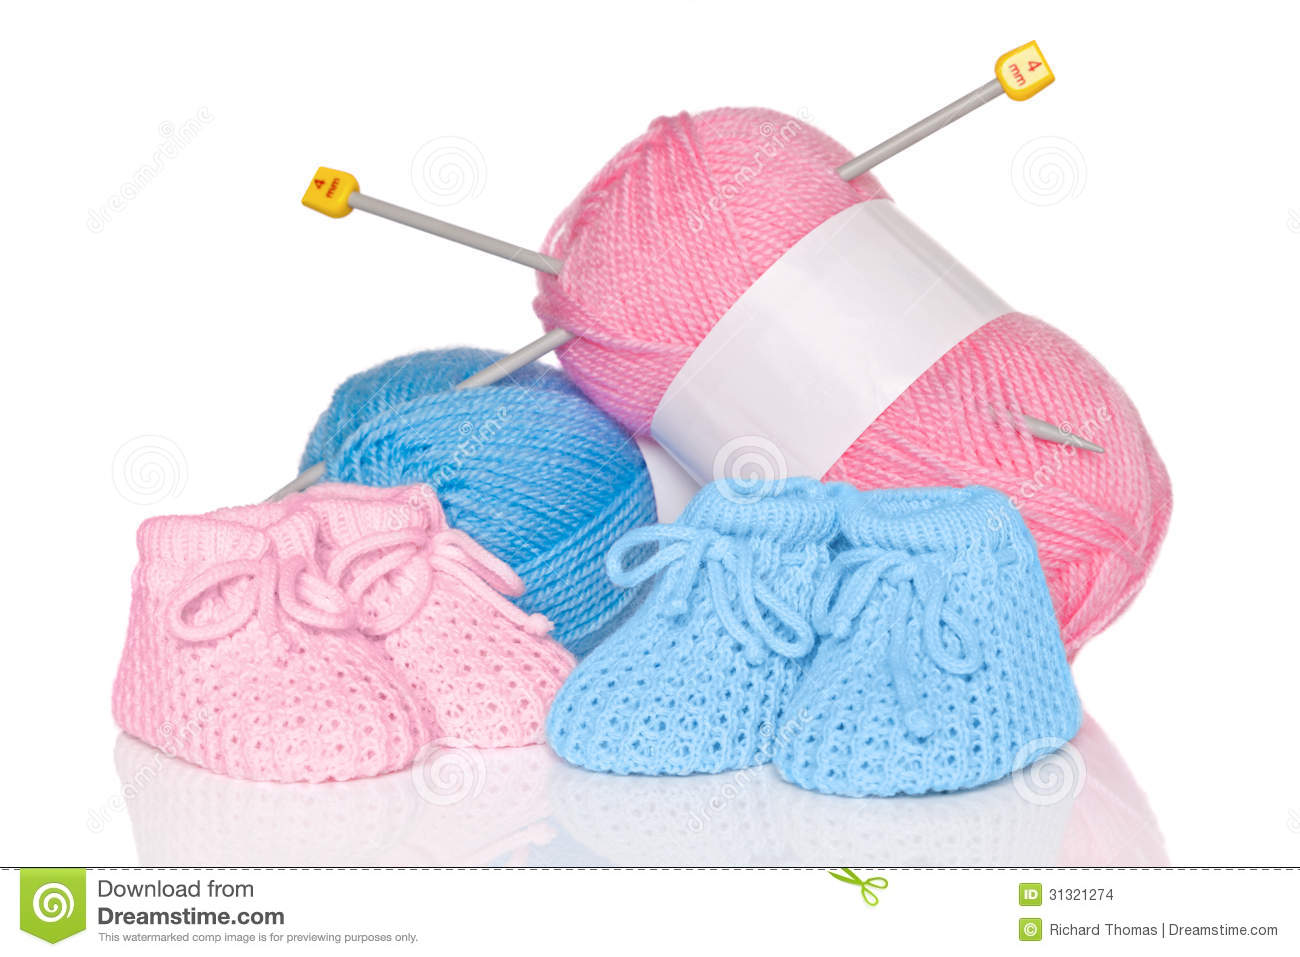 Knitting Patterns Wool And Needles : Baby Booties With Wool And Knitting Needles Stock Images ...